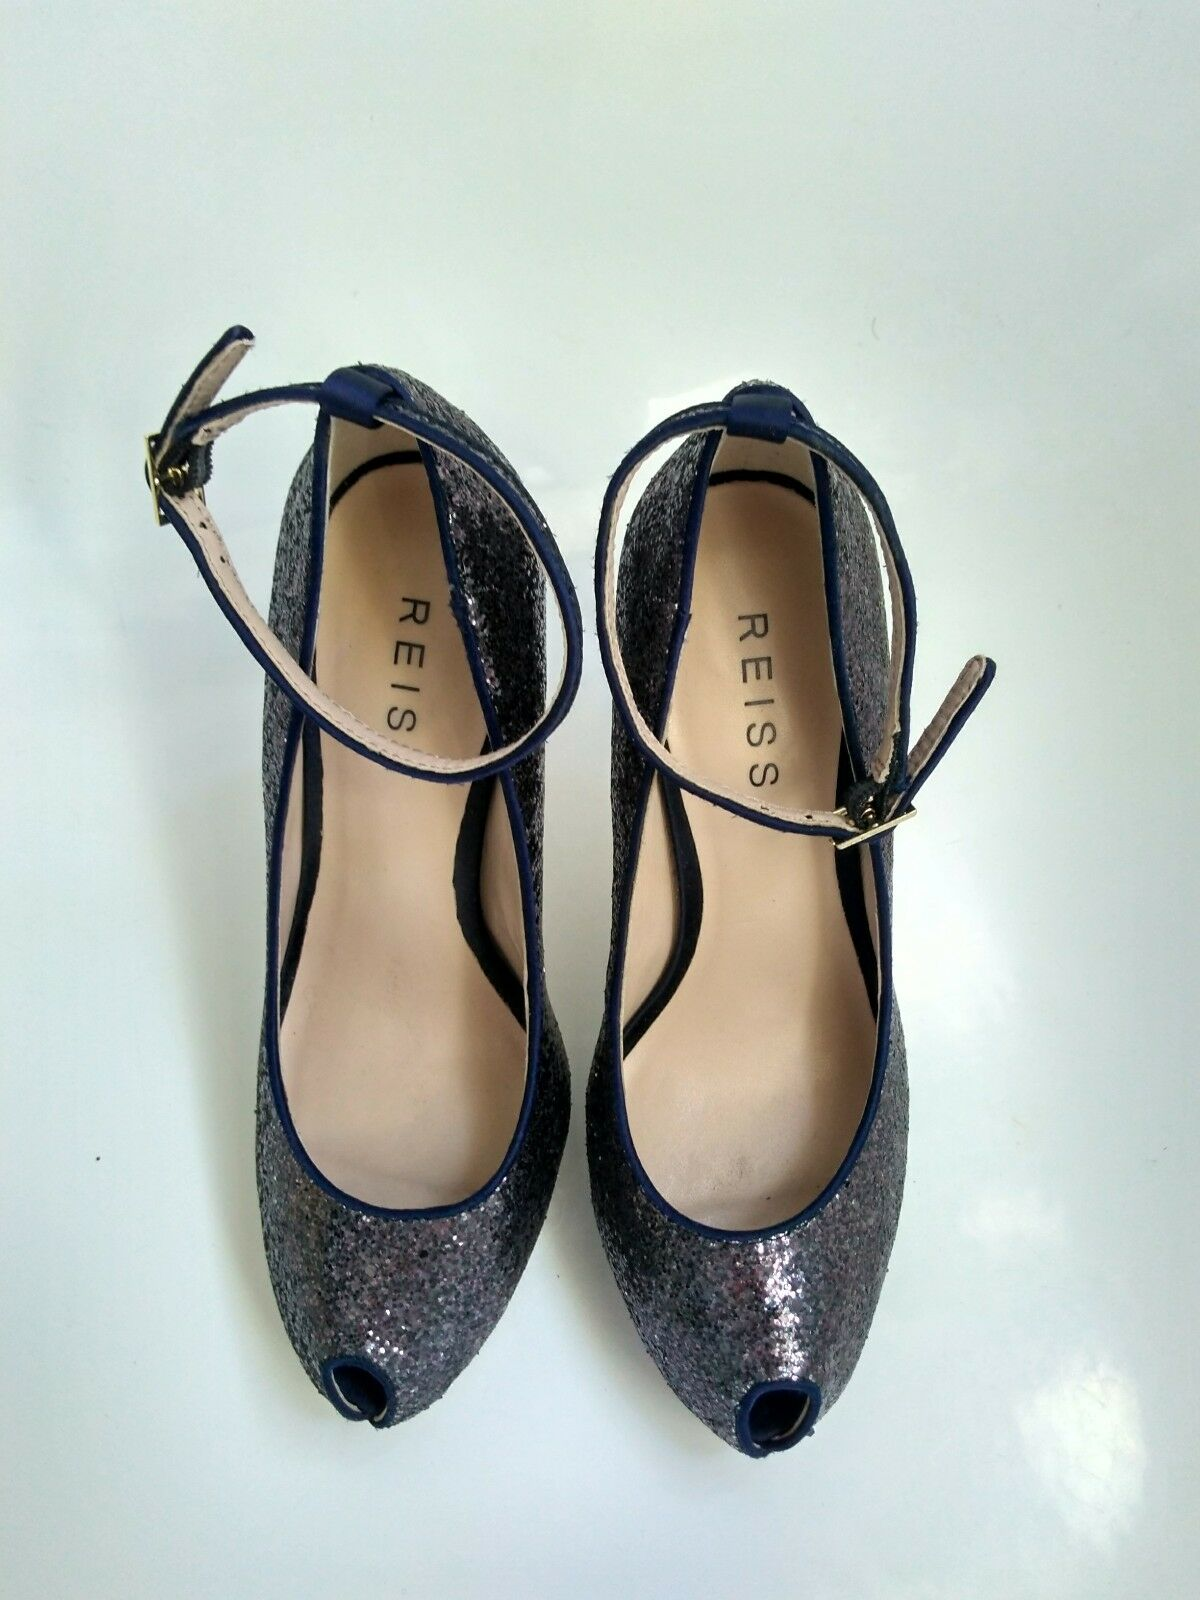 Designer UK4 REISS glitter peeptoe heels size 37 UK4 Designer --BRAND NEW-- wedding party 079749